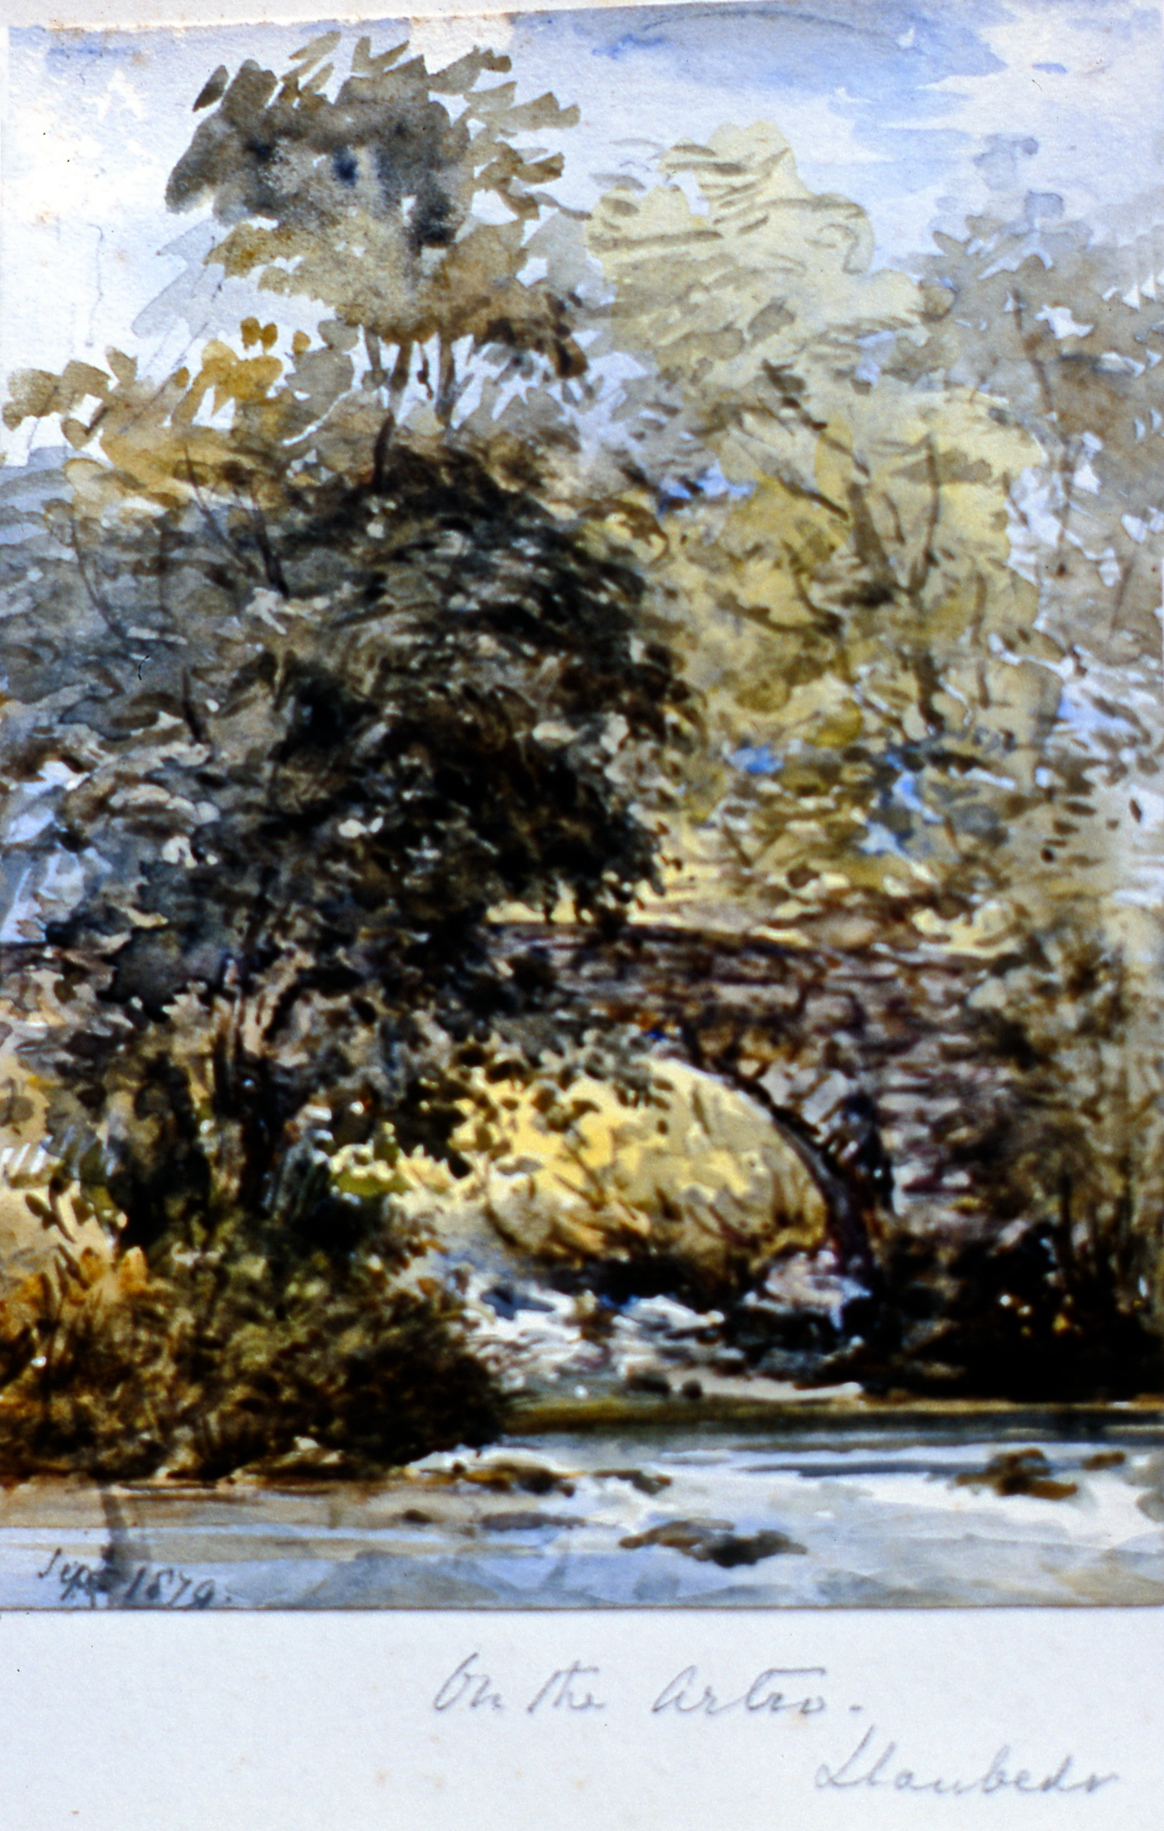 "On the Artro, Daubeds (?) , September 1879, Julia Bullock Webster, watercolour on paper, 5 5/8""  x 4 1/8"", 2003.02.48, gift of The Grist Mill at Keremeos"